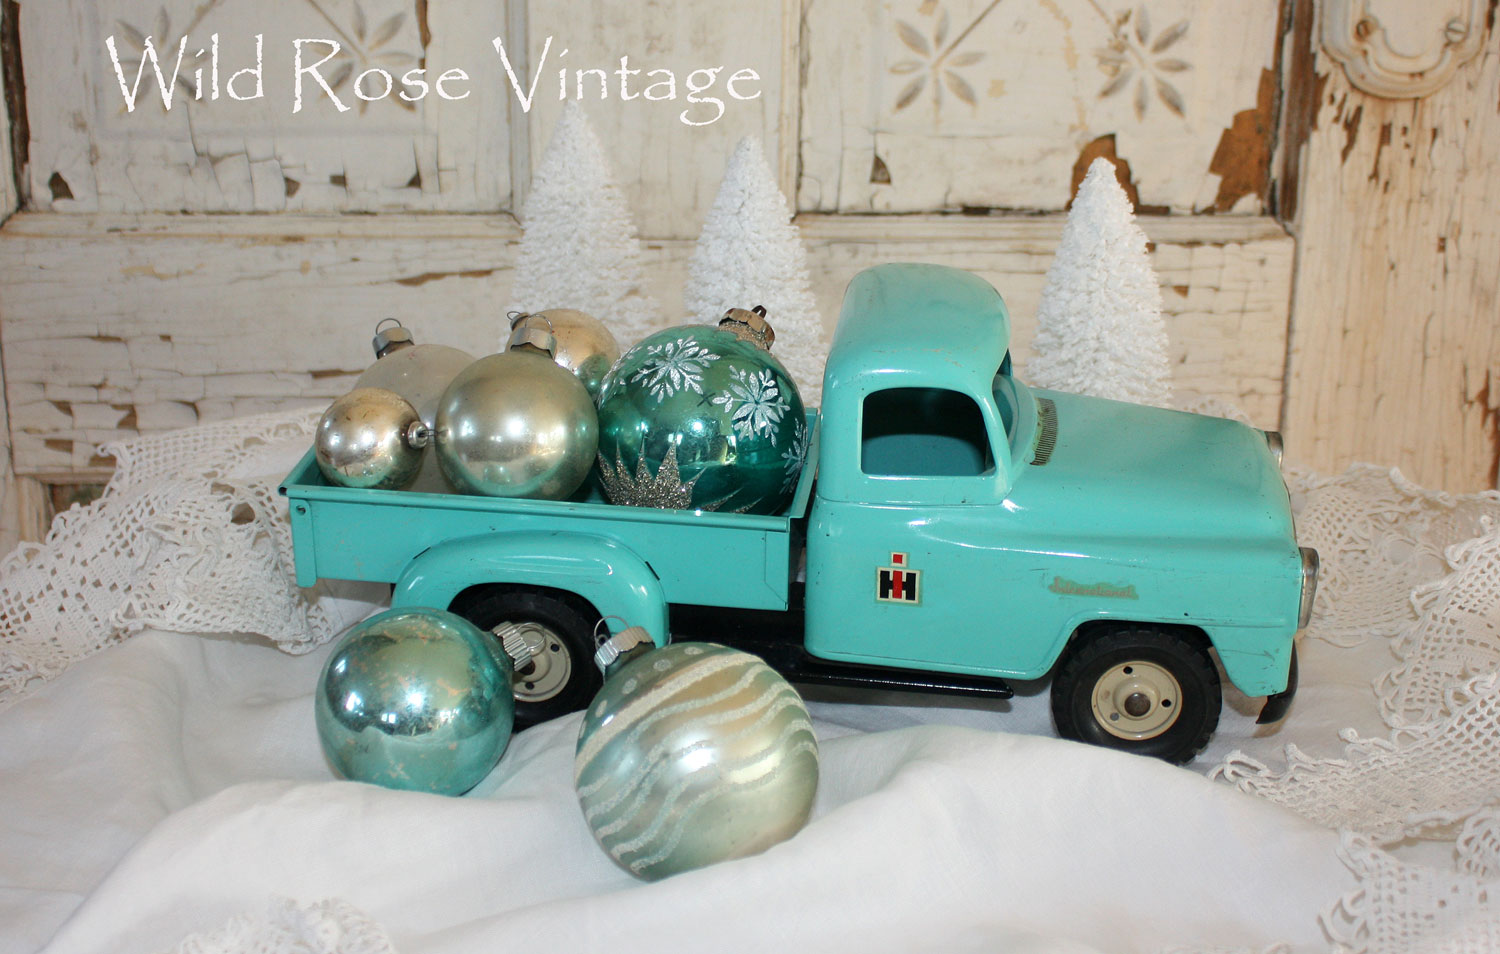 Superb Vintage Toy Trucks Part - 11: I Love This Old Aqua Truck...Mr. Wild Found It In His Stuff In The Basement  So I Cleaned It Up A Little And Filled It With Vintage Glass Balls.